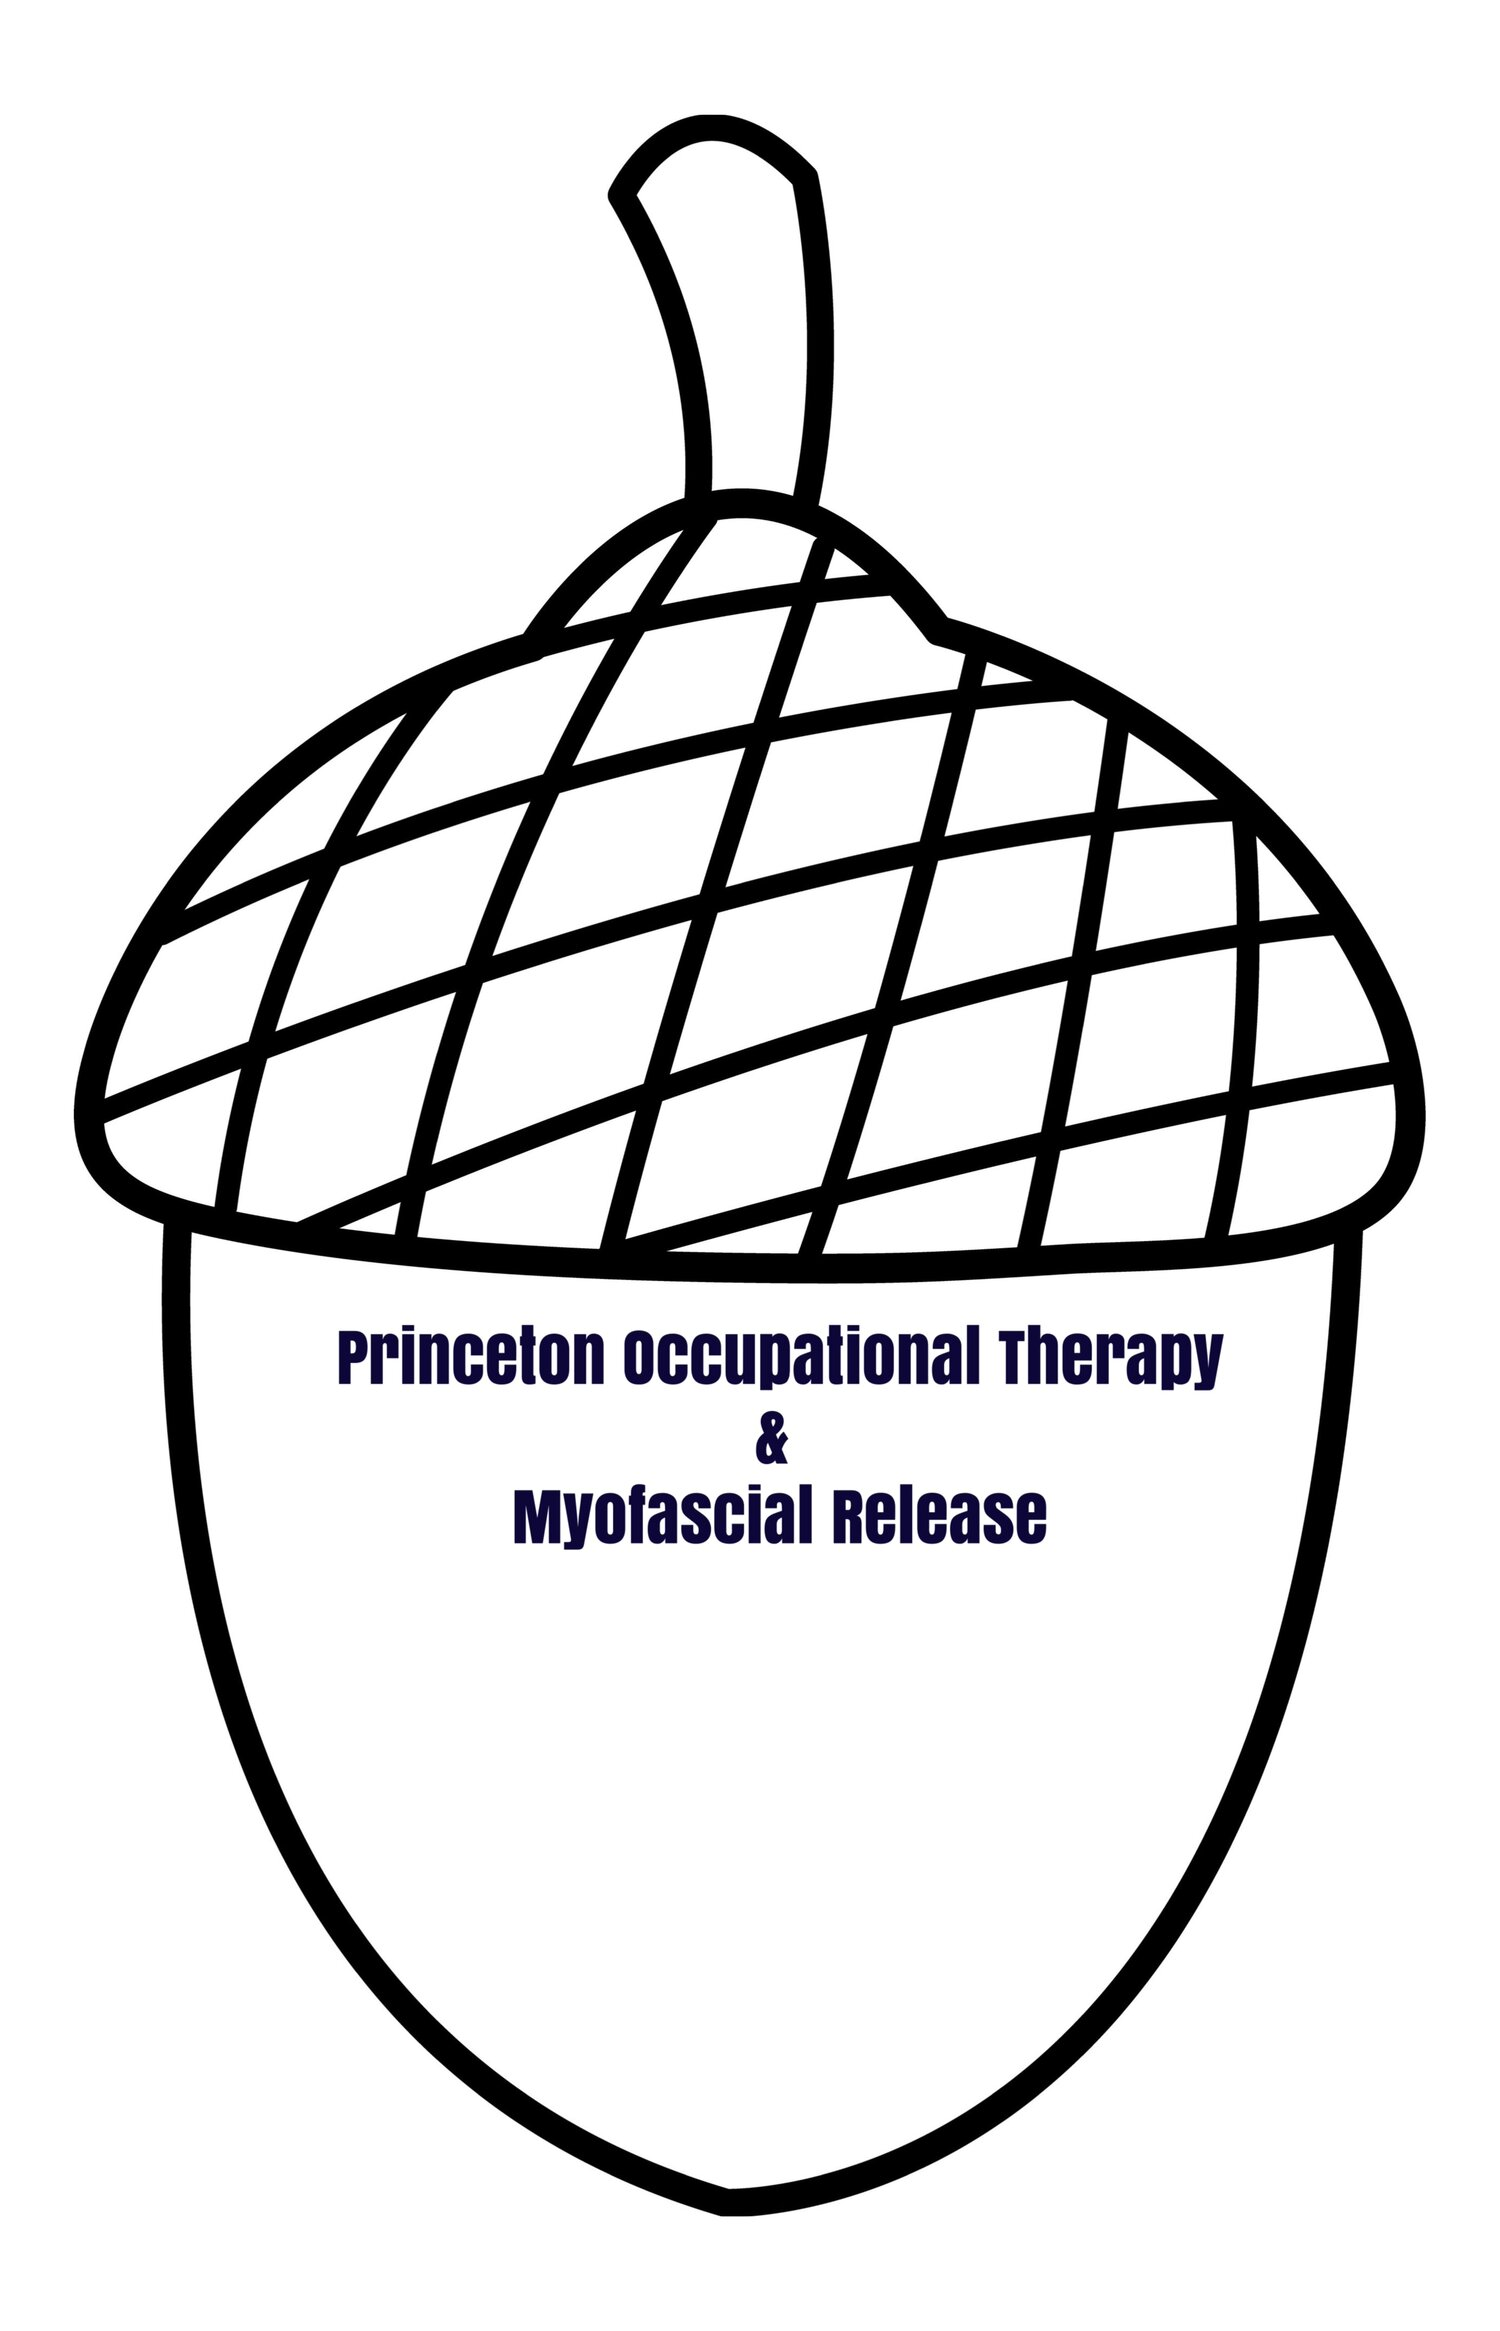 Princeton Occupational Therapy & Myofascial Release